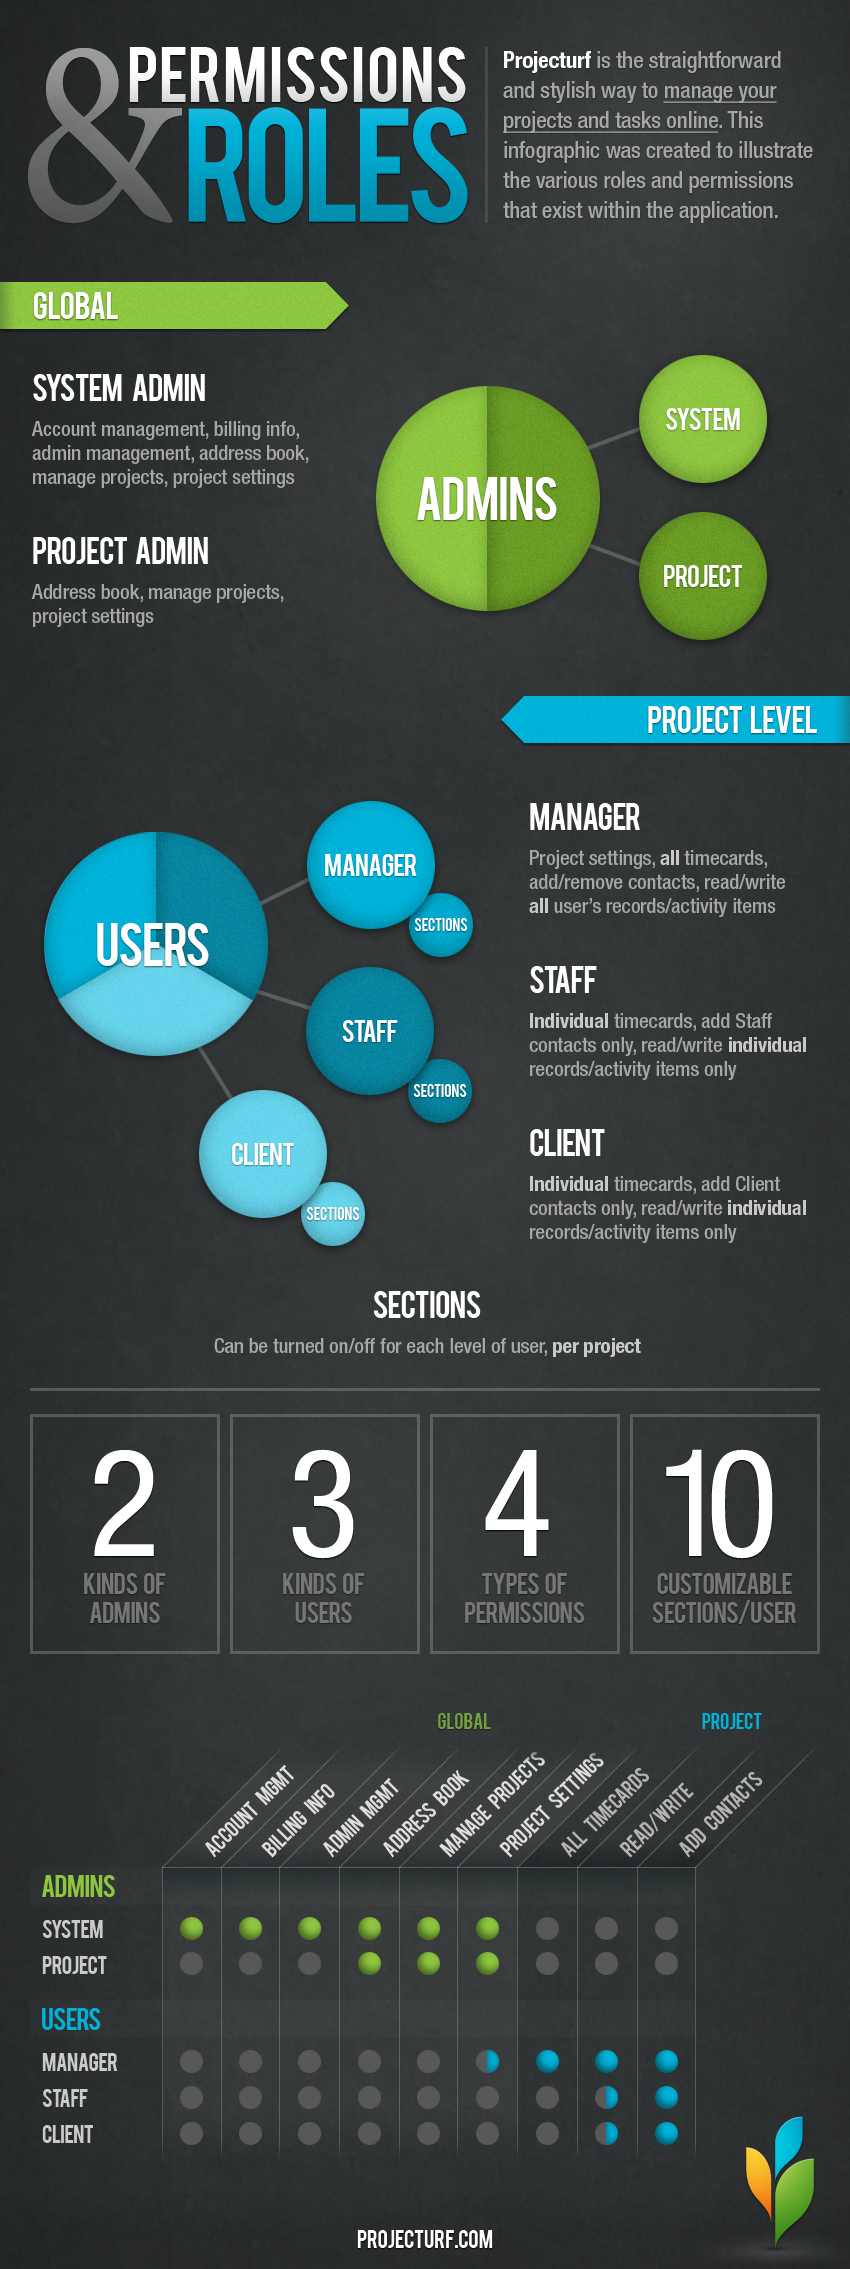 Projecturf Permissions Infographic